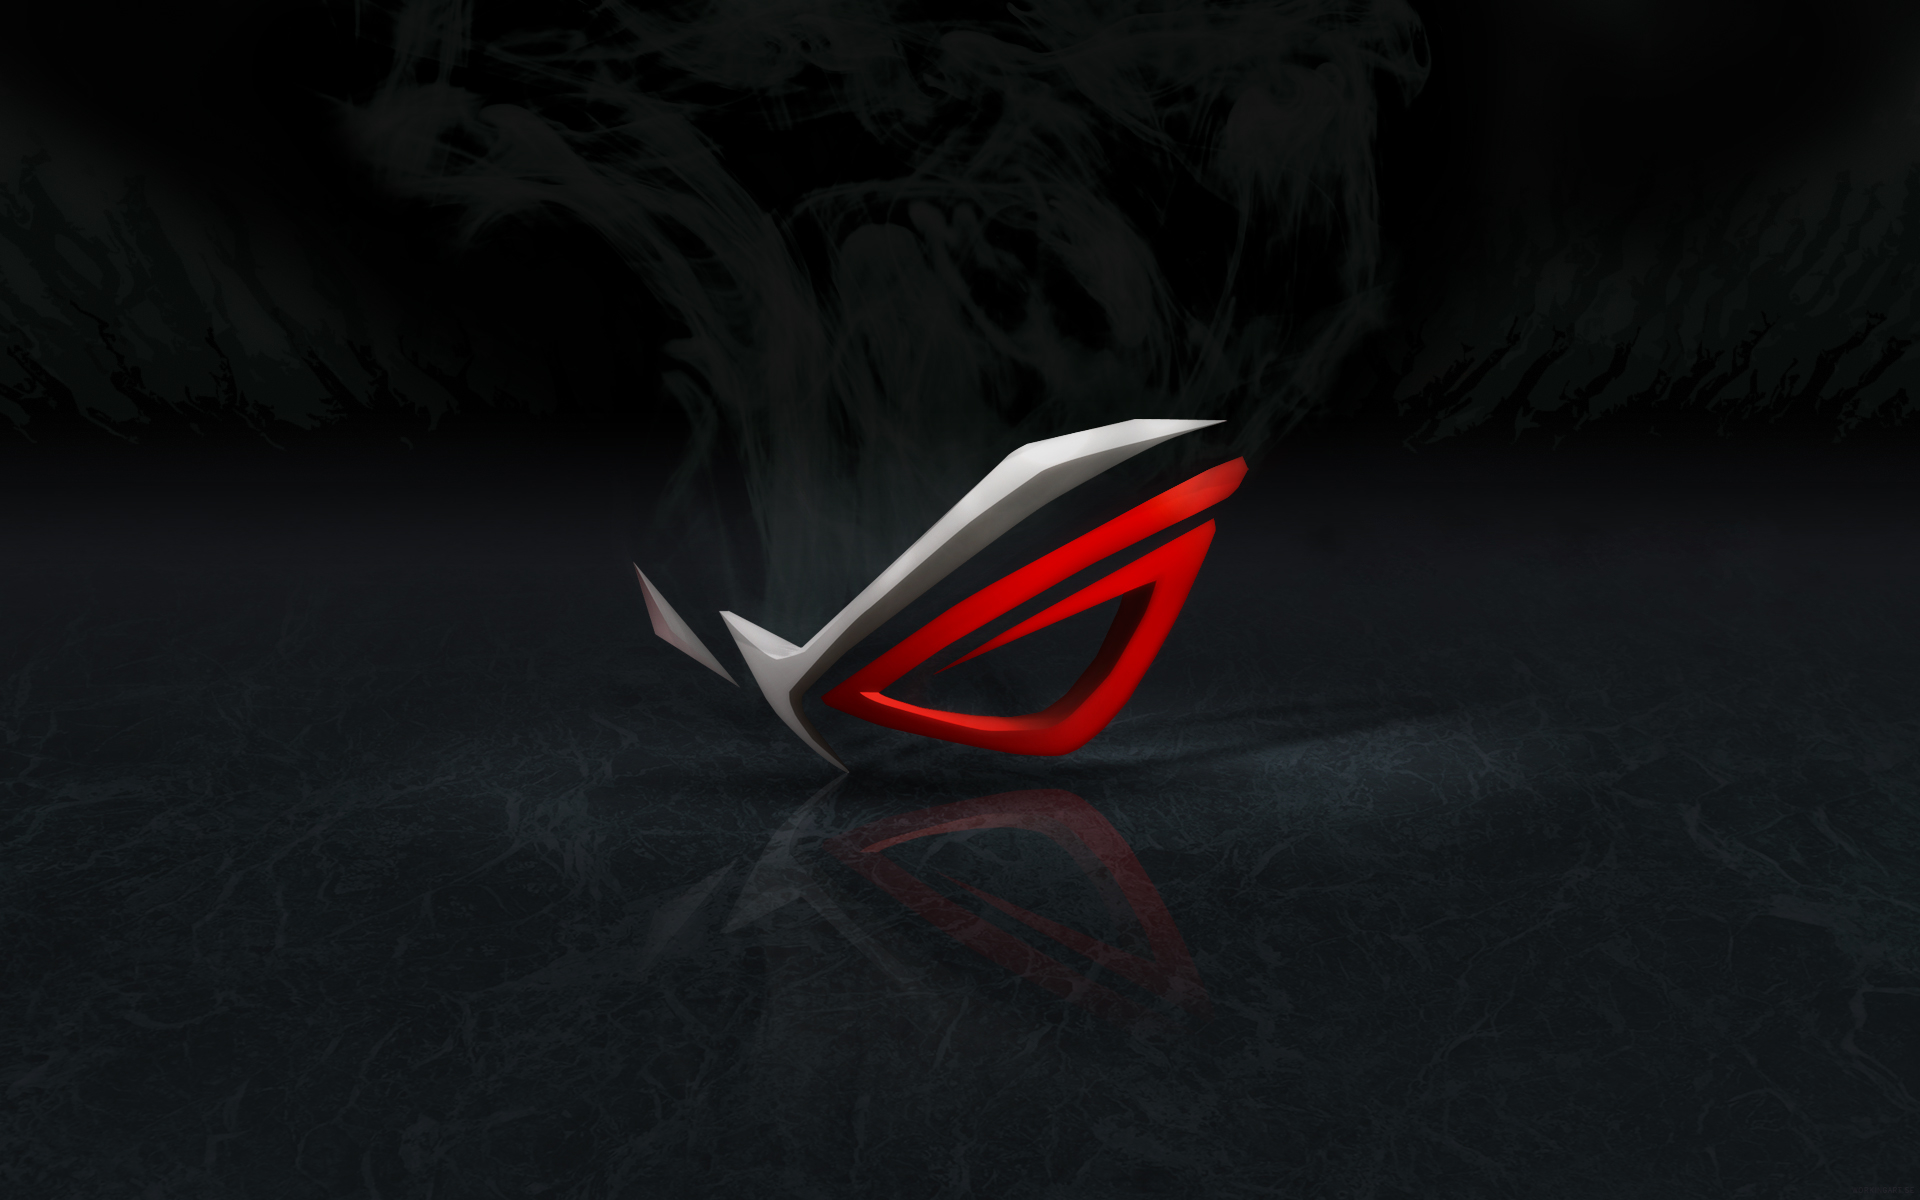 ASUS ROG AMD Computer Wallpapers, Desktop Backgrounds 1920x1200 Id